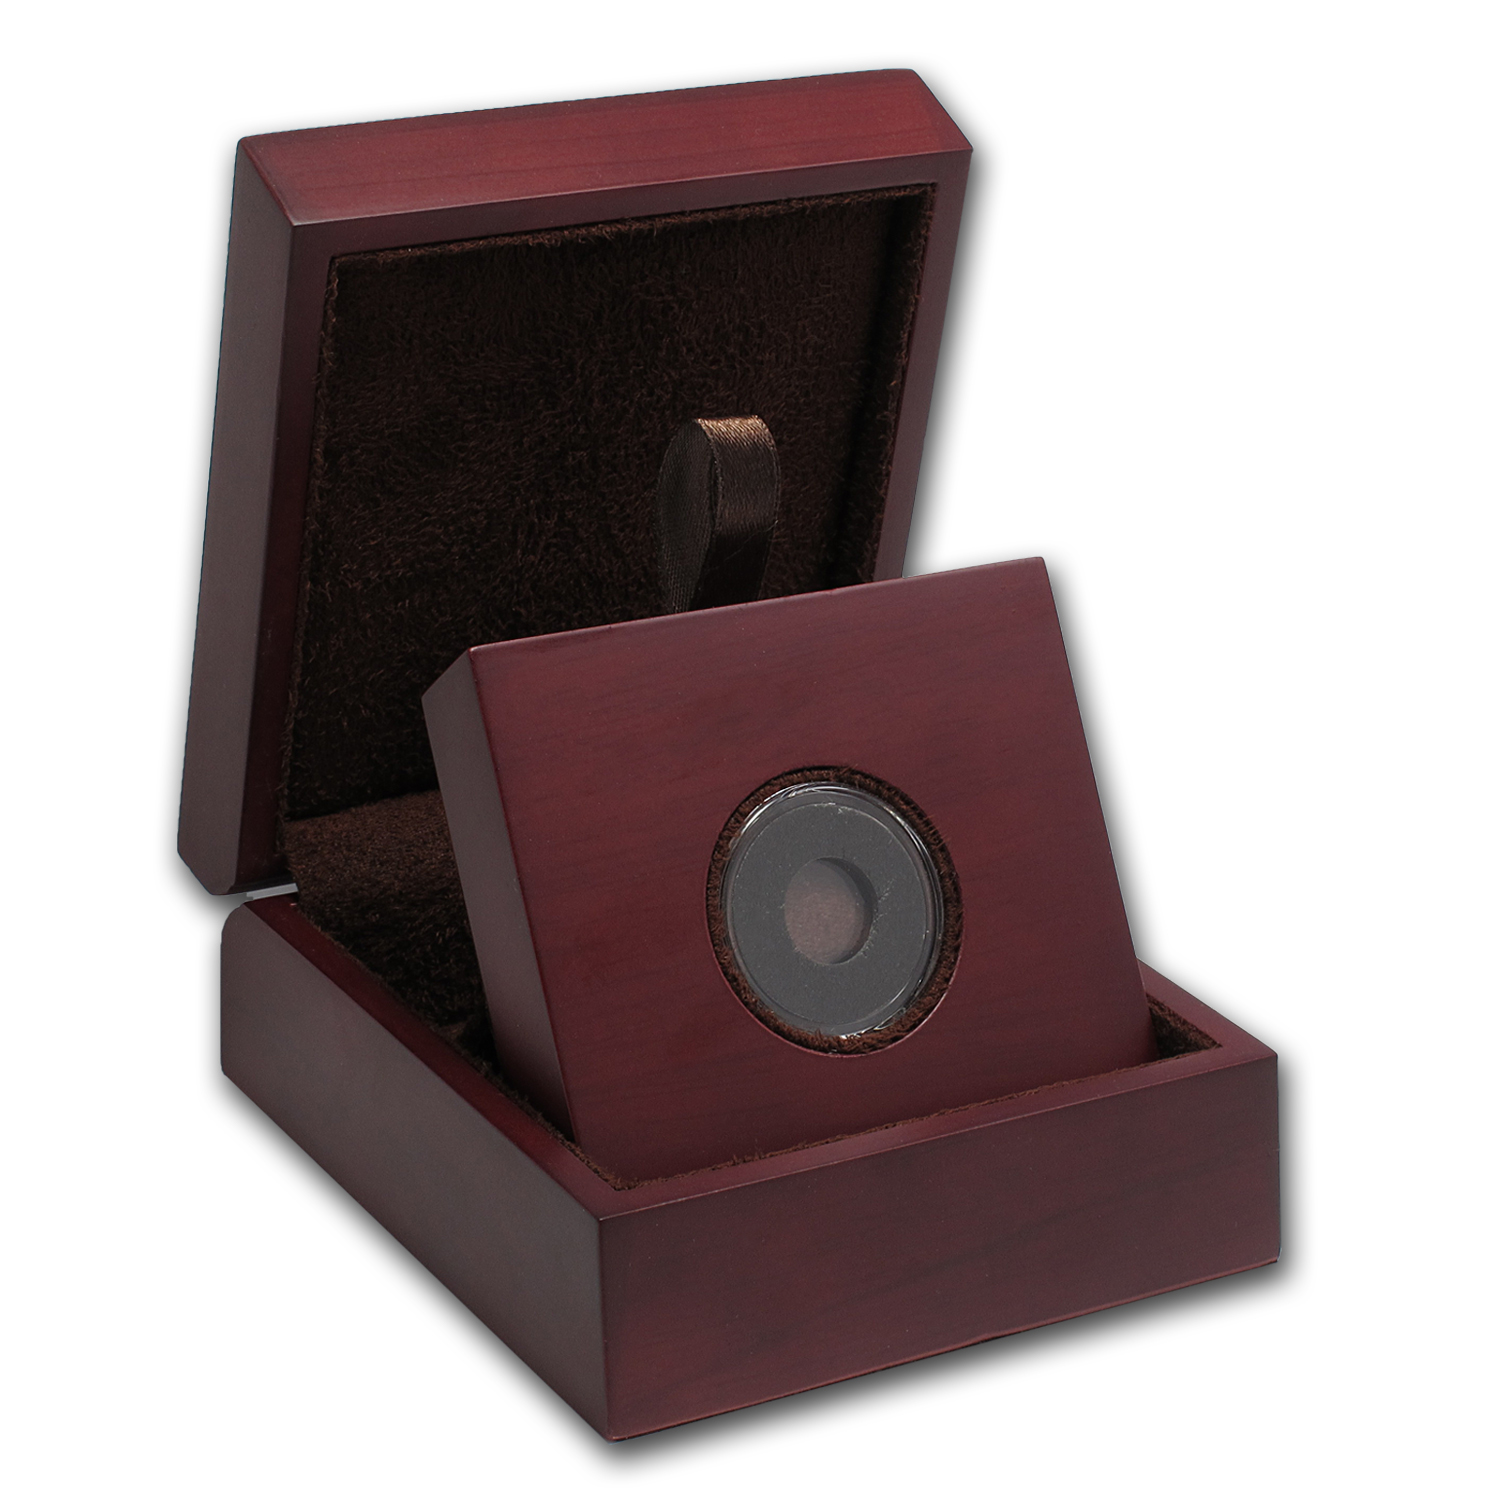 APMEX Wood Gift Box - Includes 13 mm Air-Tite Holder with Gasket